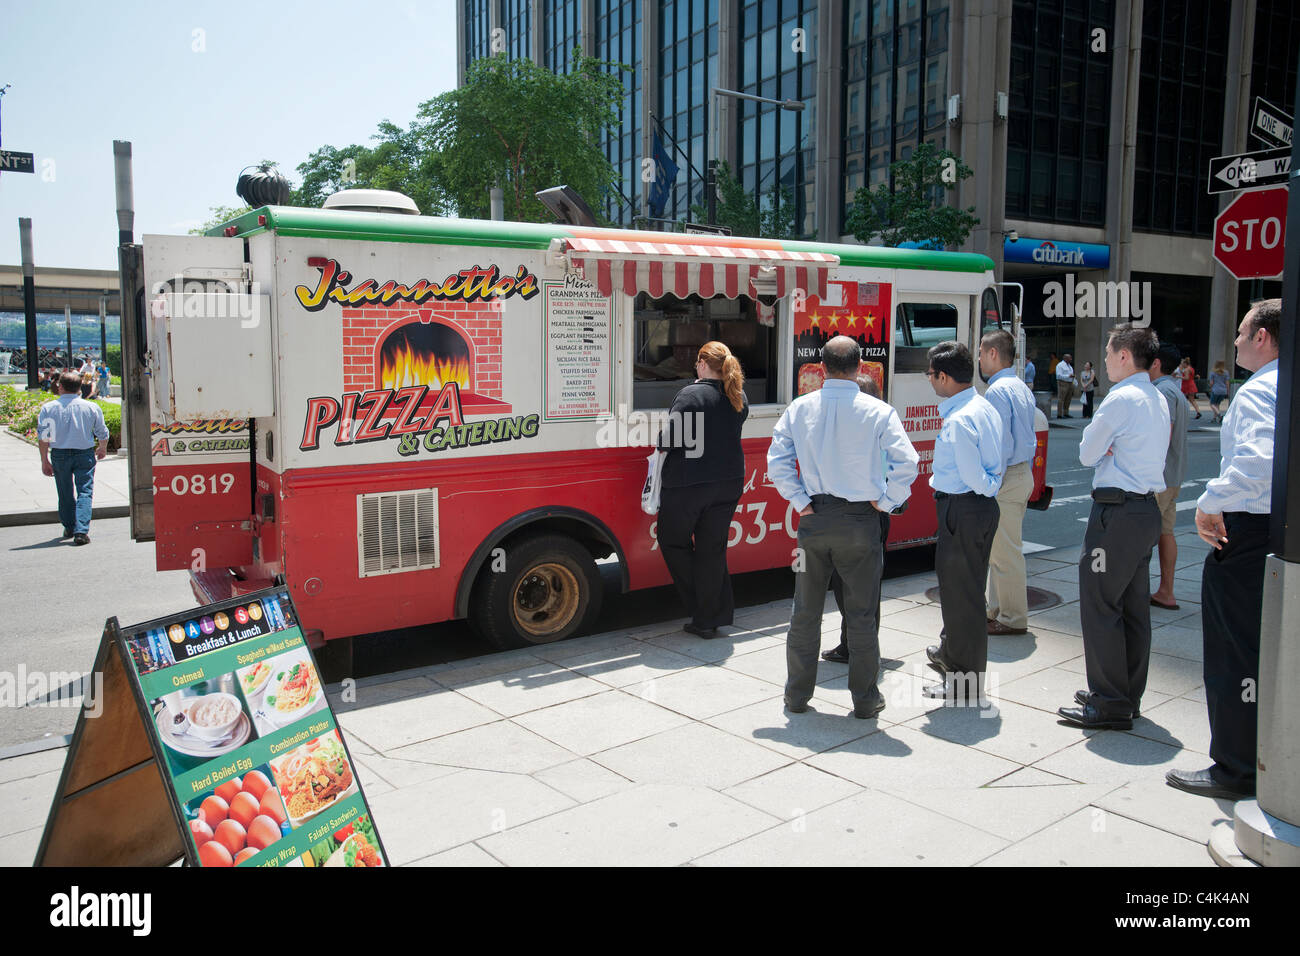 Customers line up for the popular Jiannetto's Pizza and Catering food truck in Lower Manhattan in New York - Stock Image